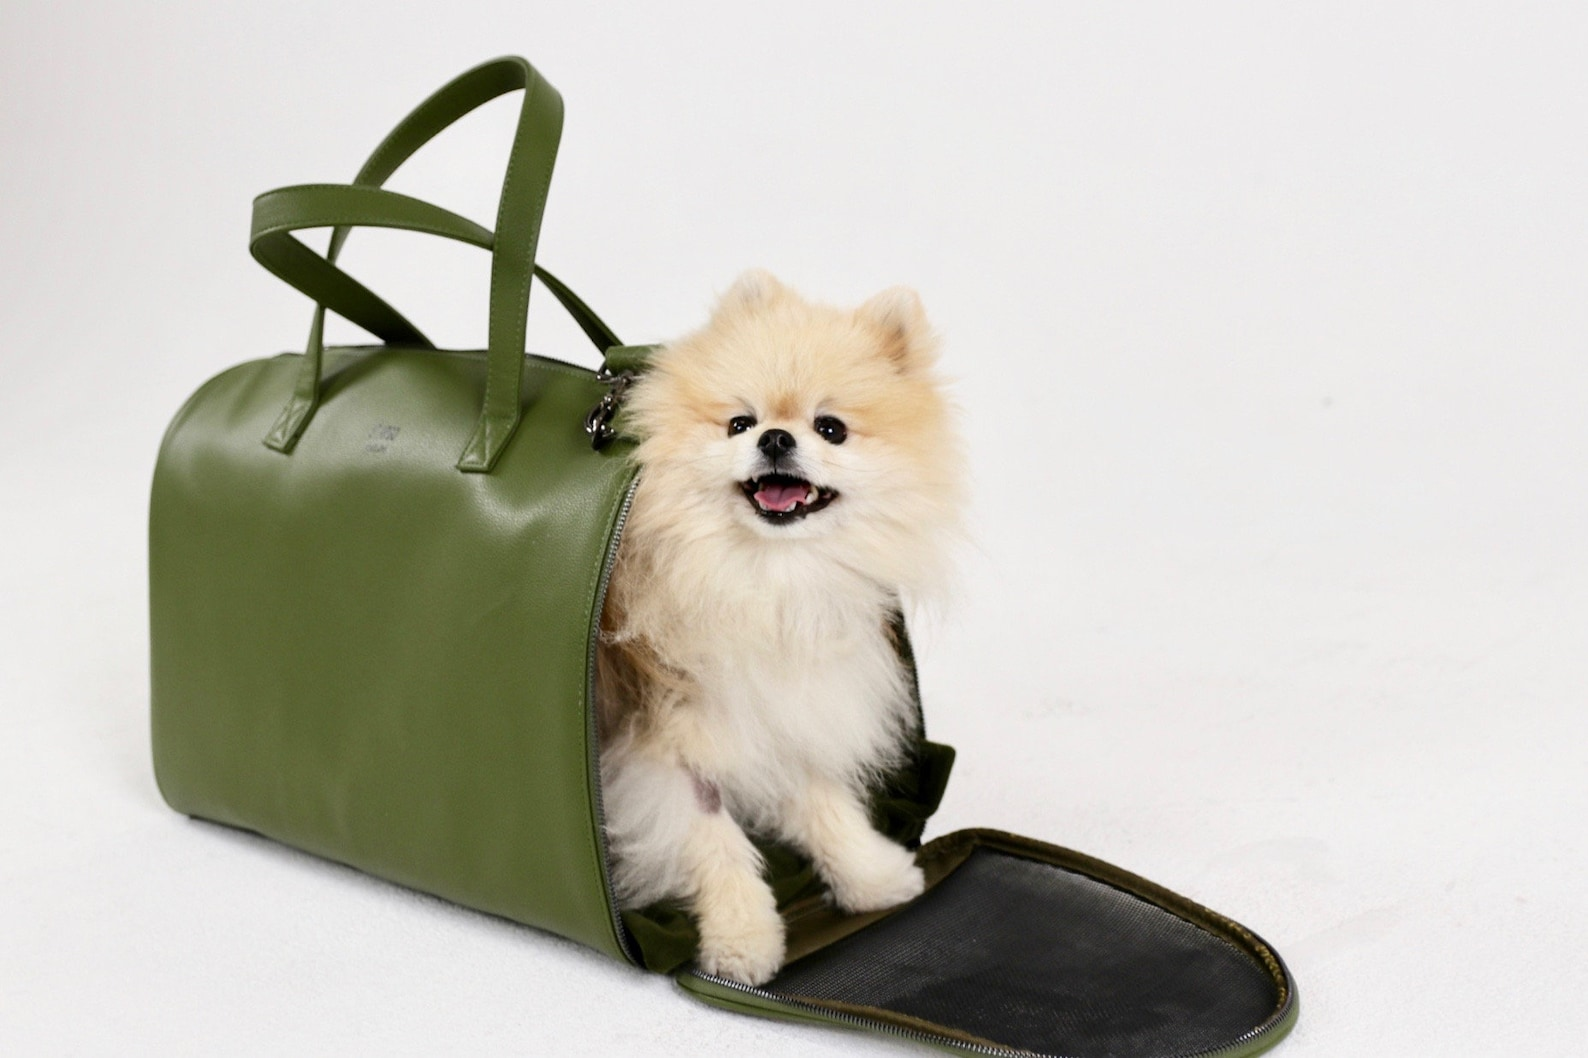 Dog peeking out of a carrier